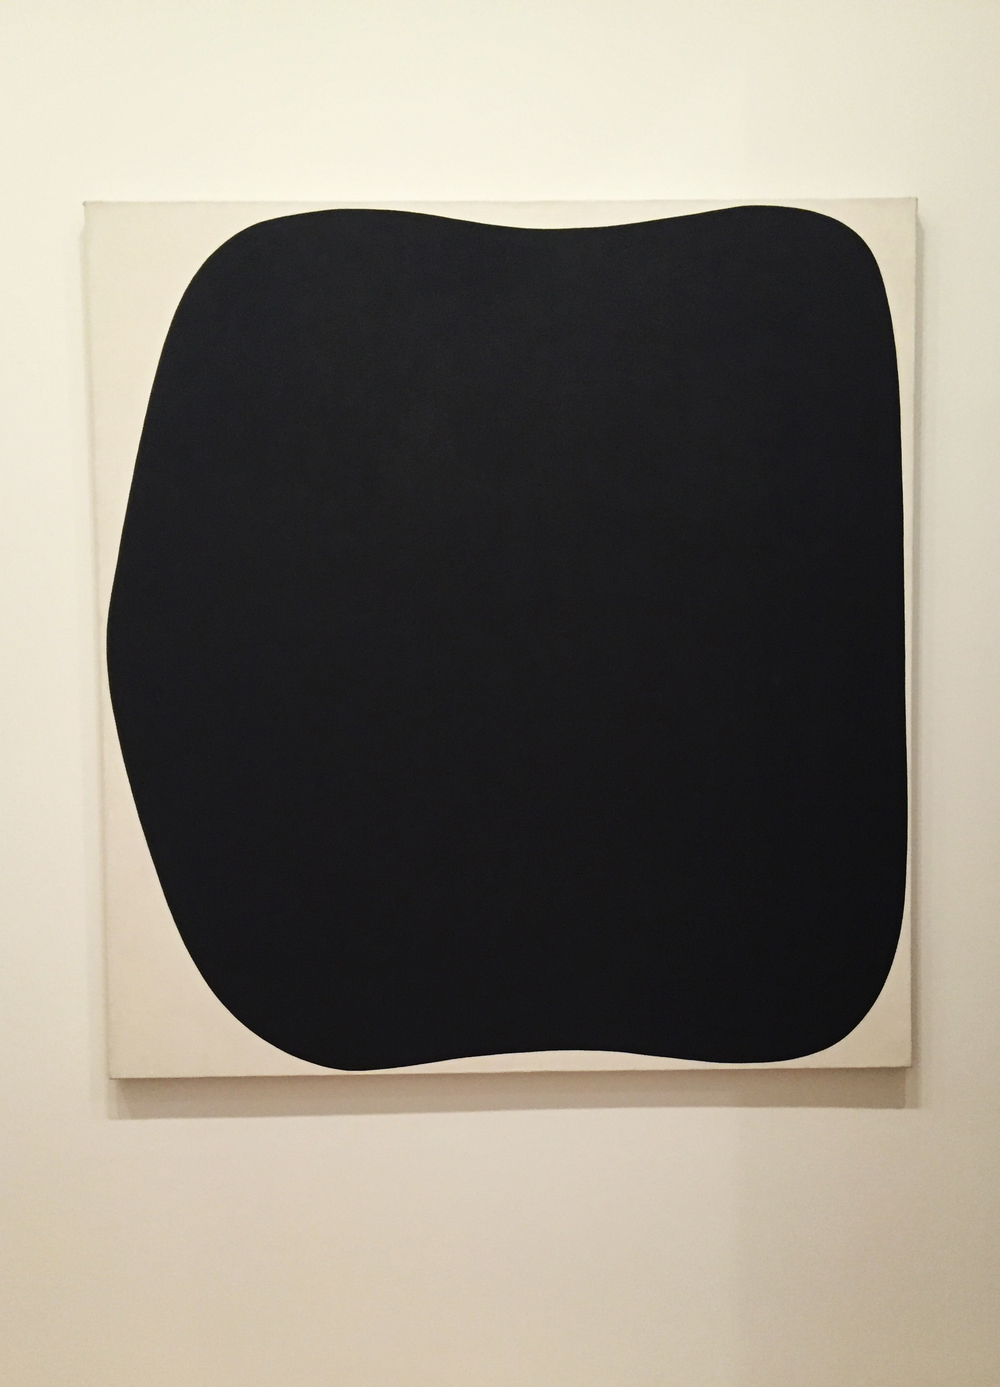 "Ellsworth Kelly (American, 1923) wanted us to see form and relationships when looking at his work. He named this work, ""Black Ripe"" (1955, oil on canvas), after visiting the studio of his buddy, Alexander Calder."